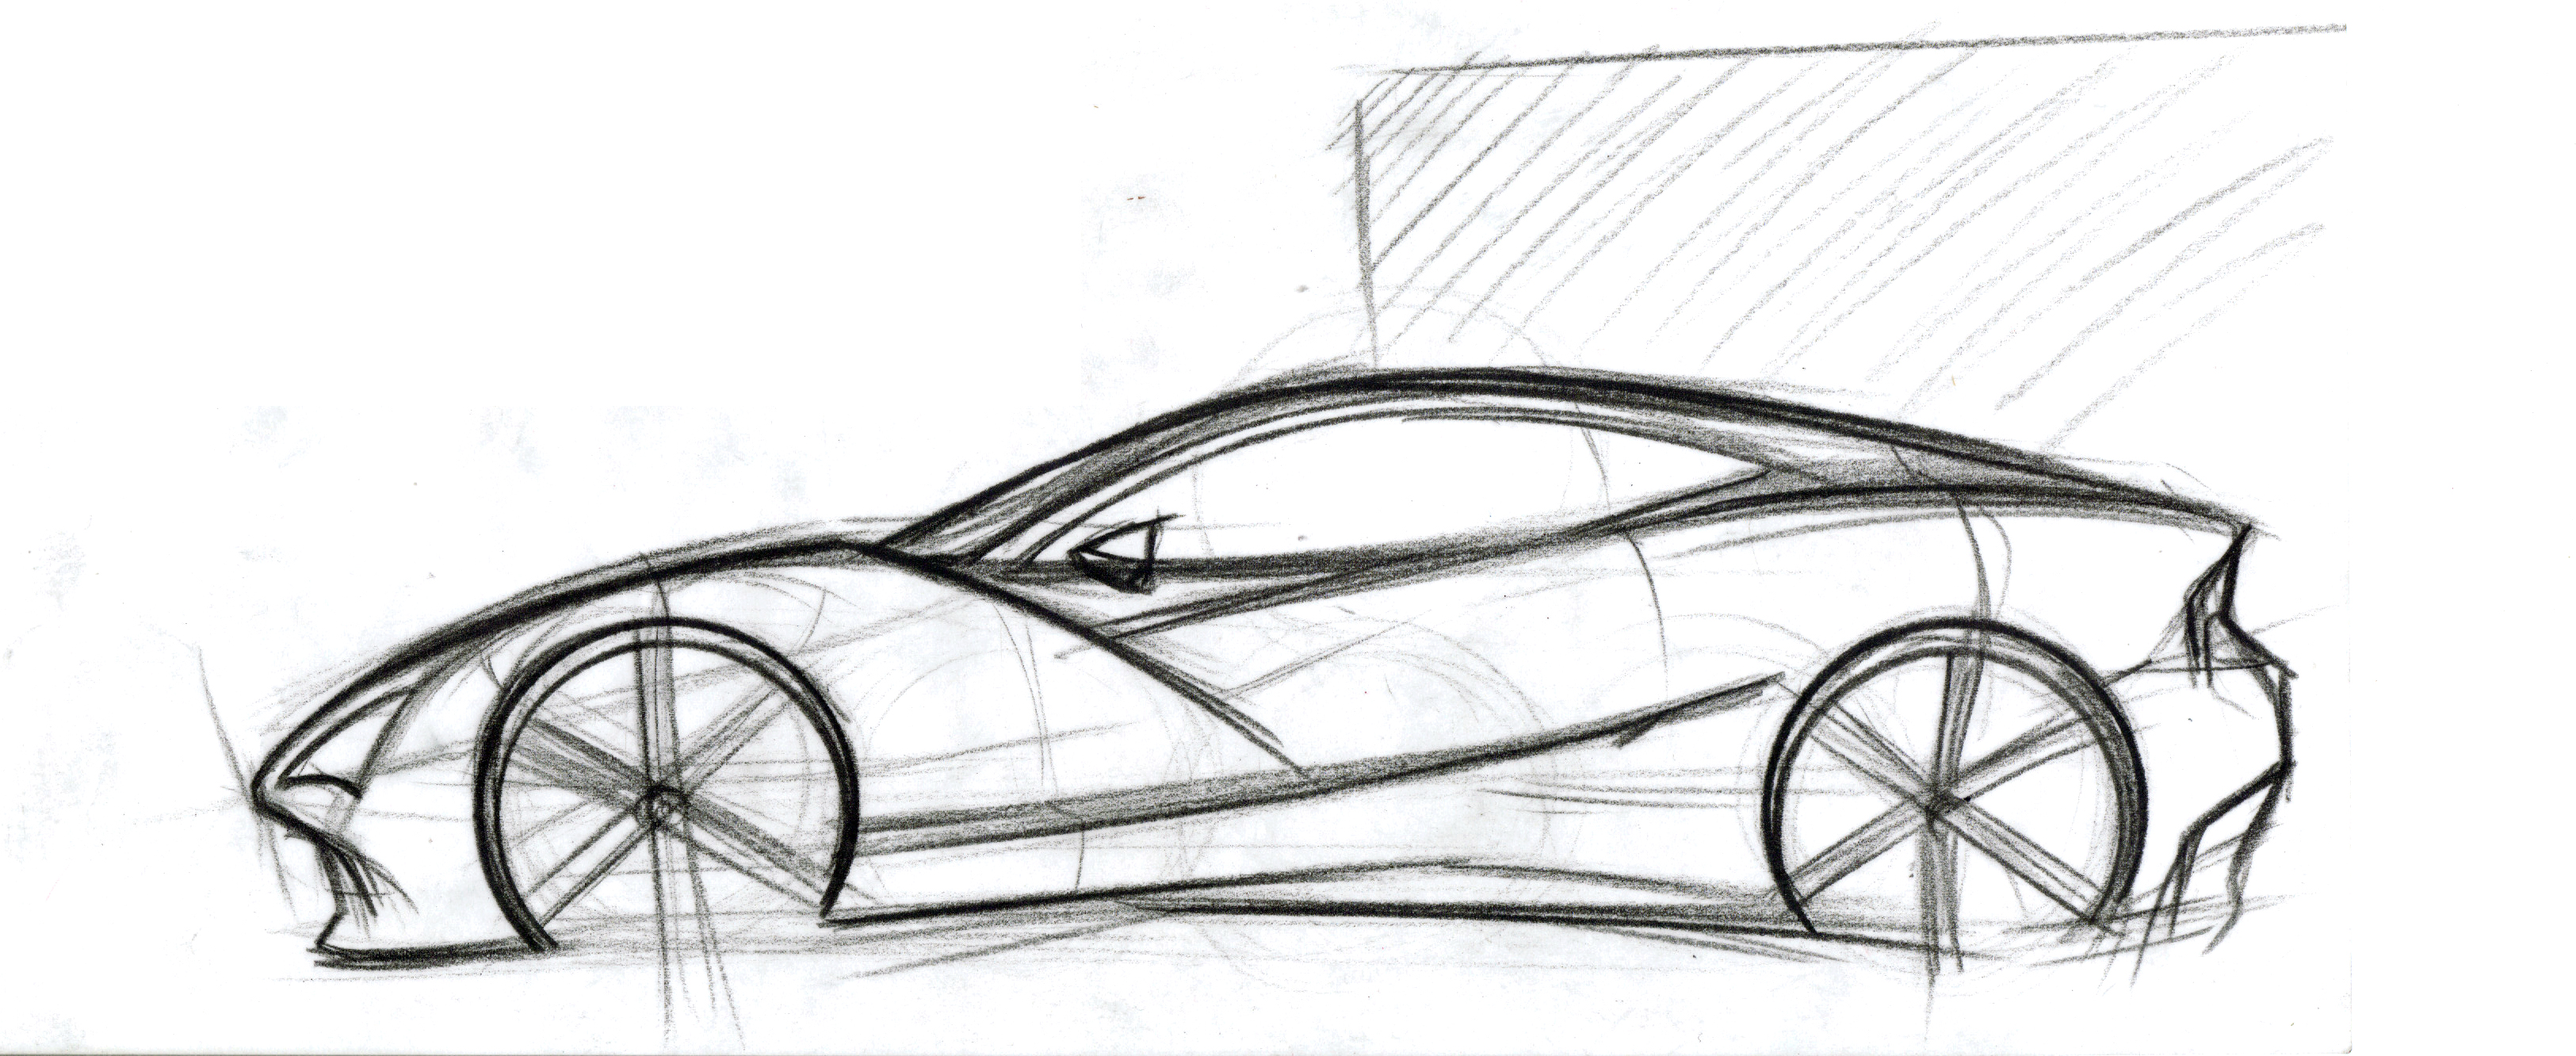 Swaroop Roy | HOT SKETCHES | Pinterest | Car sketch and Sketches